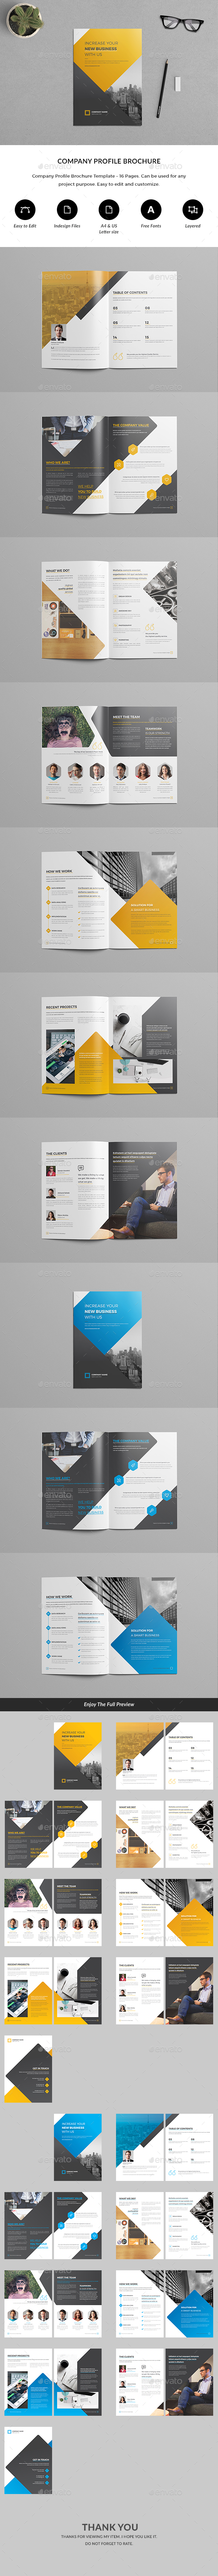 Company Profile Brochure Template - Brochures Print Templates